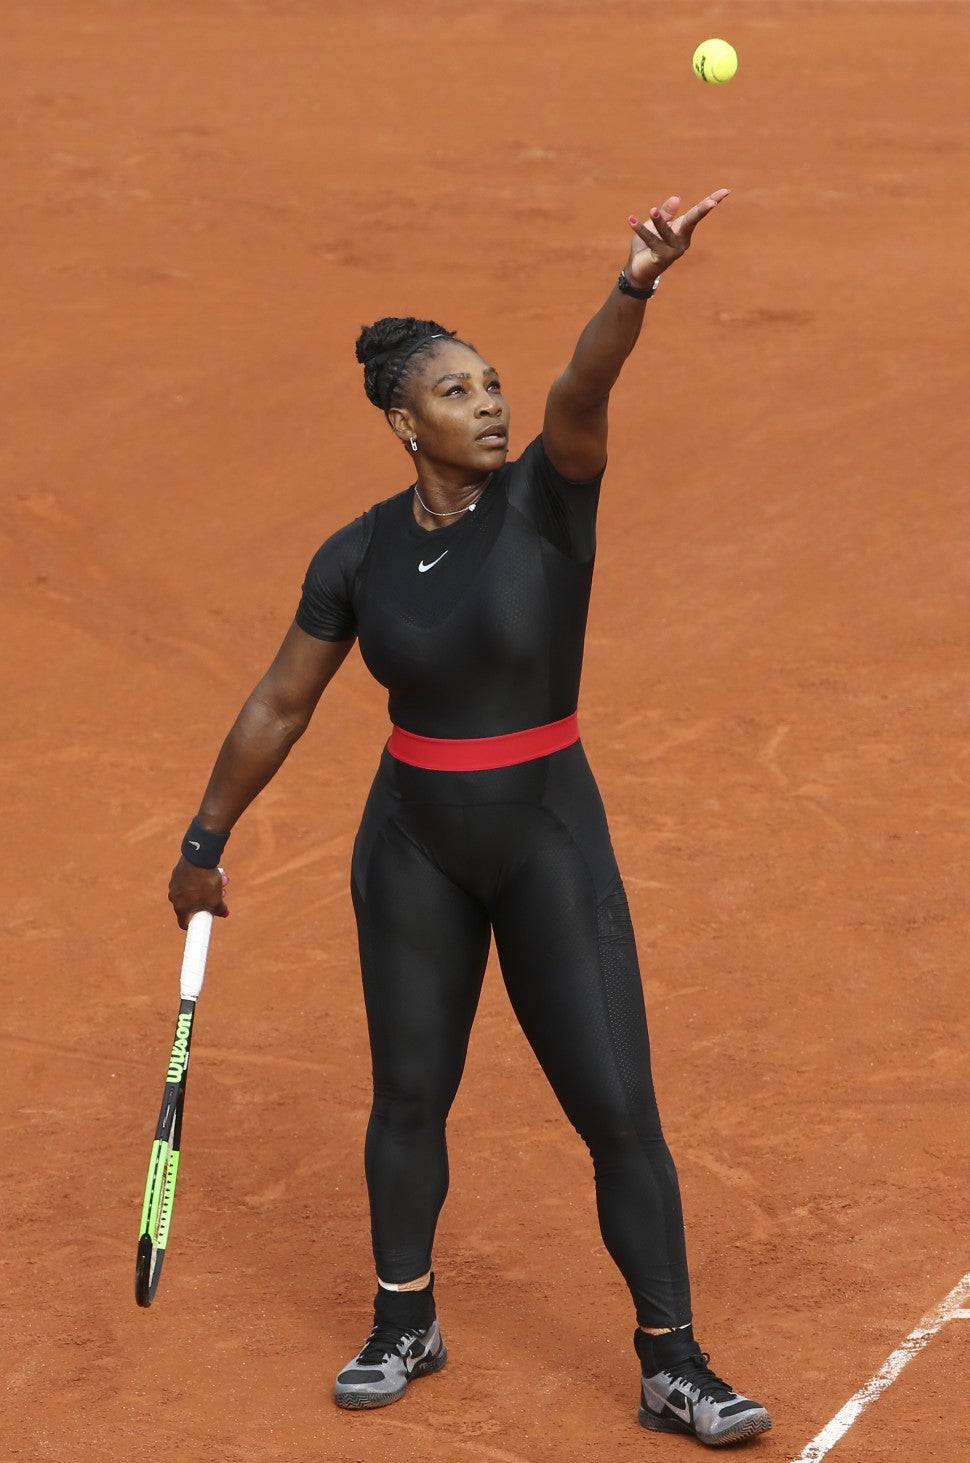 Serena Williams French Open black catsuit